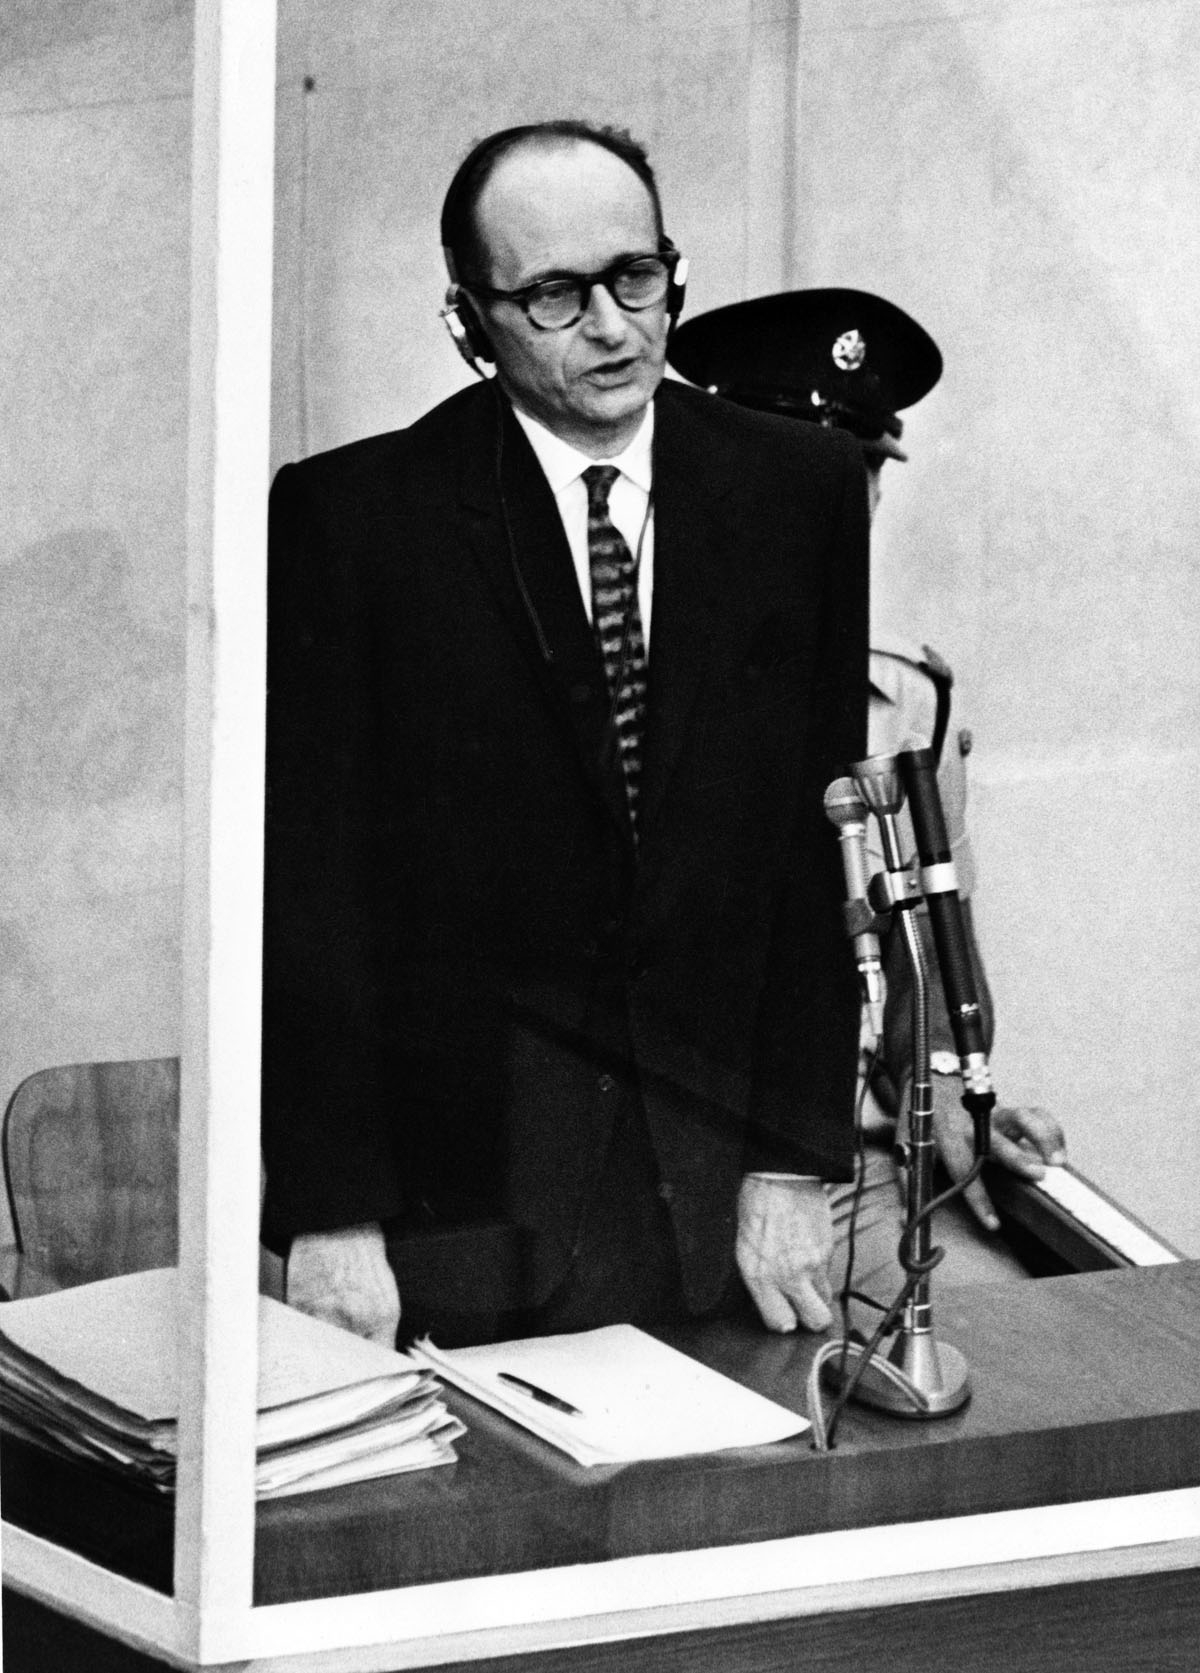 Nazi war criminal Adolf Eichmann testifies in his bullet-proof dock during the first day of his trial in front of an Israeli court, 11 April 1961, in Jerusalem. Former Nazi SS leader, and one of the main organizers of the extermination camps in Nazi-occup